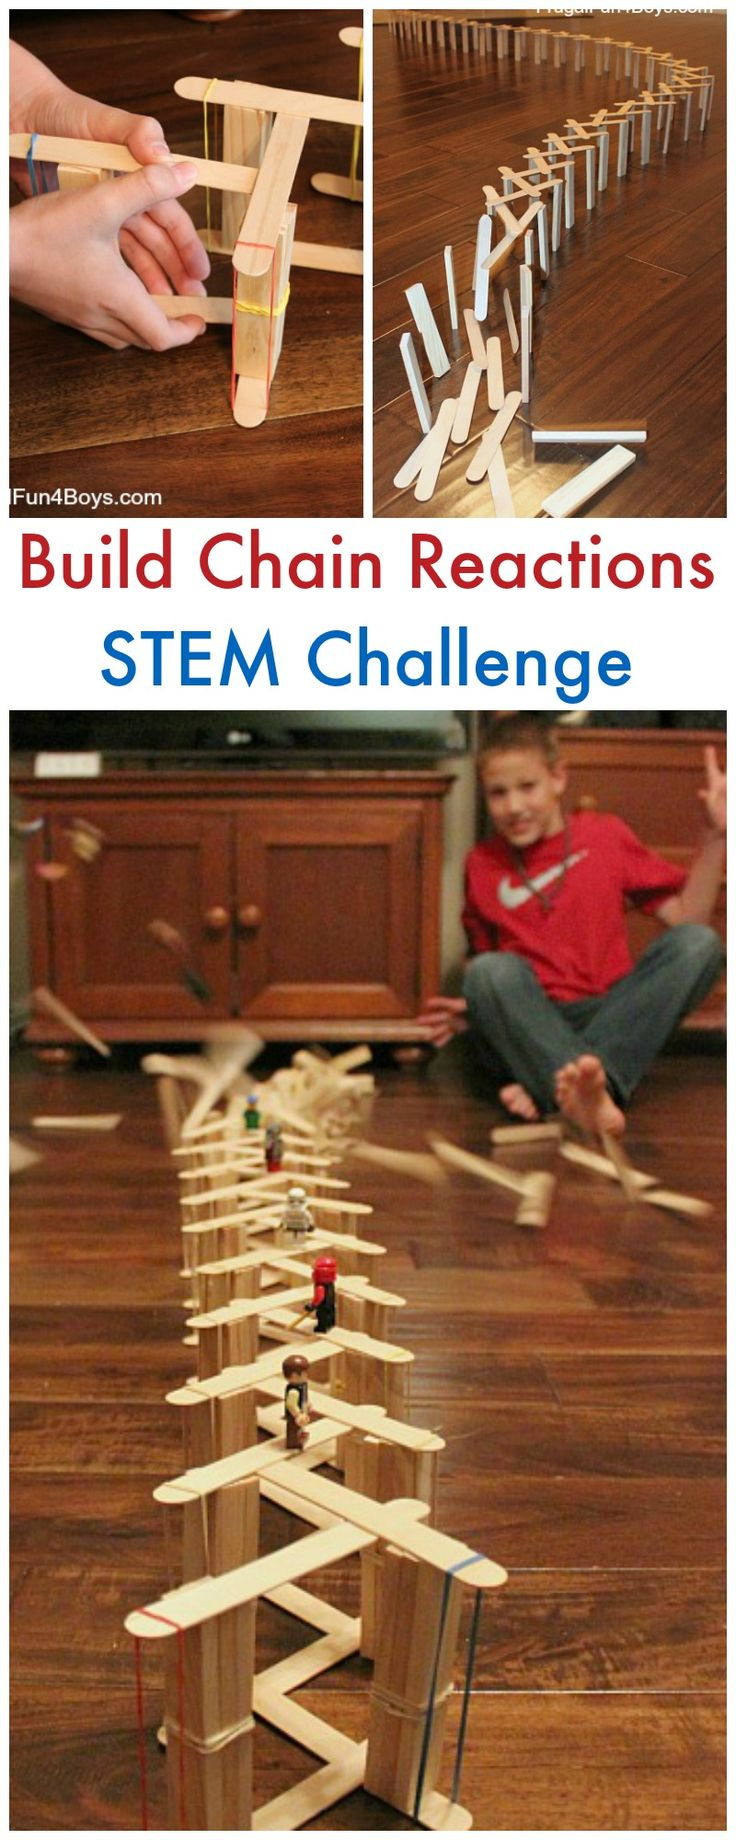 Simple Popsicle Stick Chain Reactions - Fun STEM challenge. Move over dominoes! Here are two fun and simple ways to make chain reactions with craft sticks.